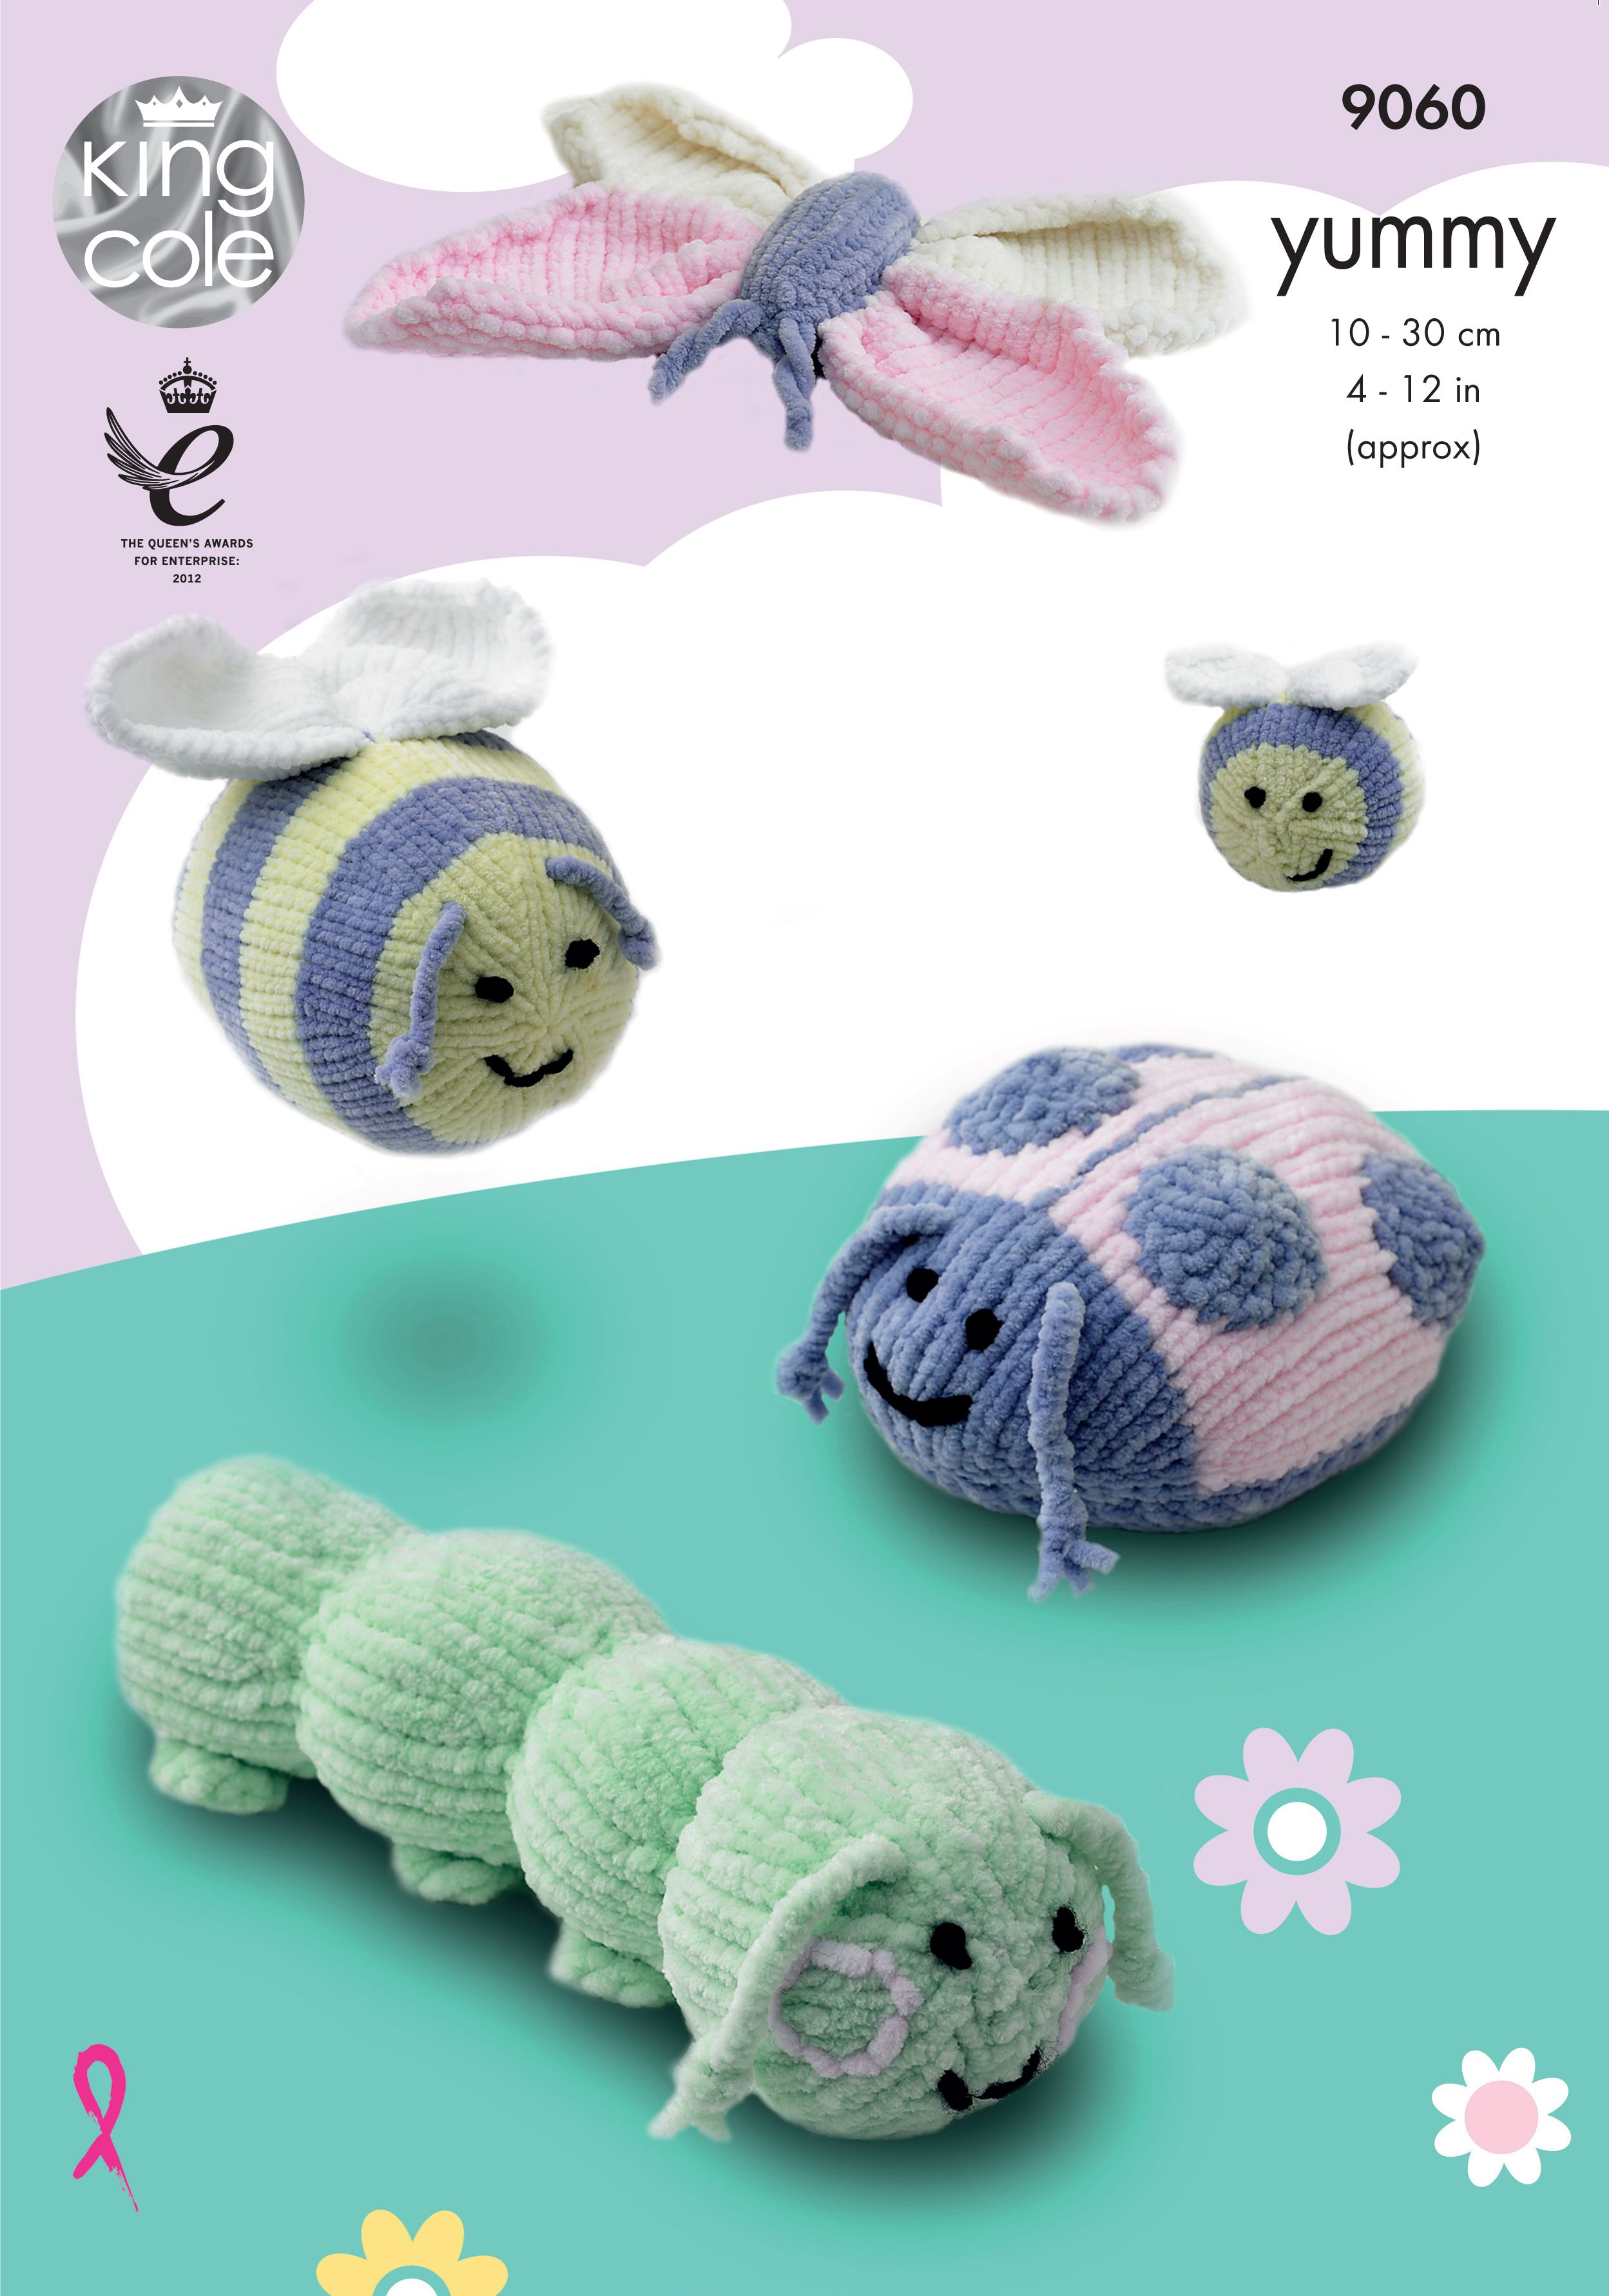 Yummy Bugs knitted with Yummy - King Cole #Caterpillar #Ladybird ...